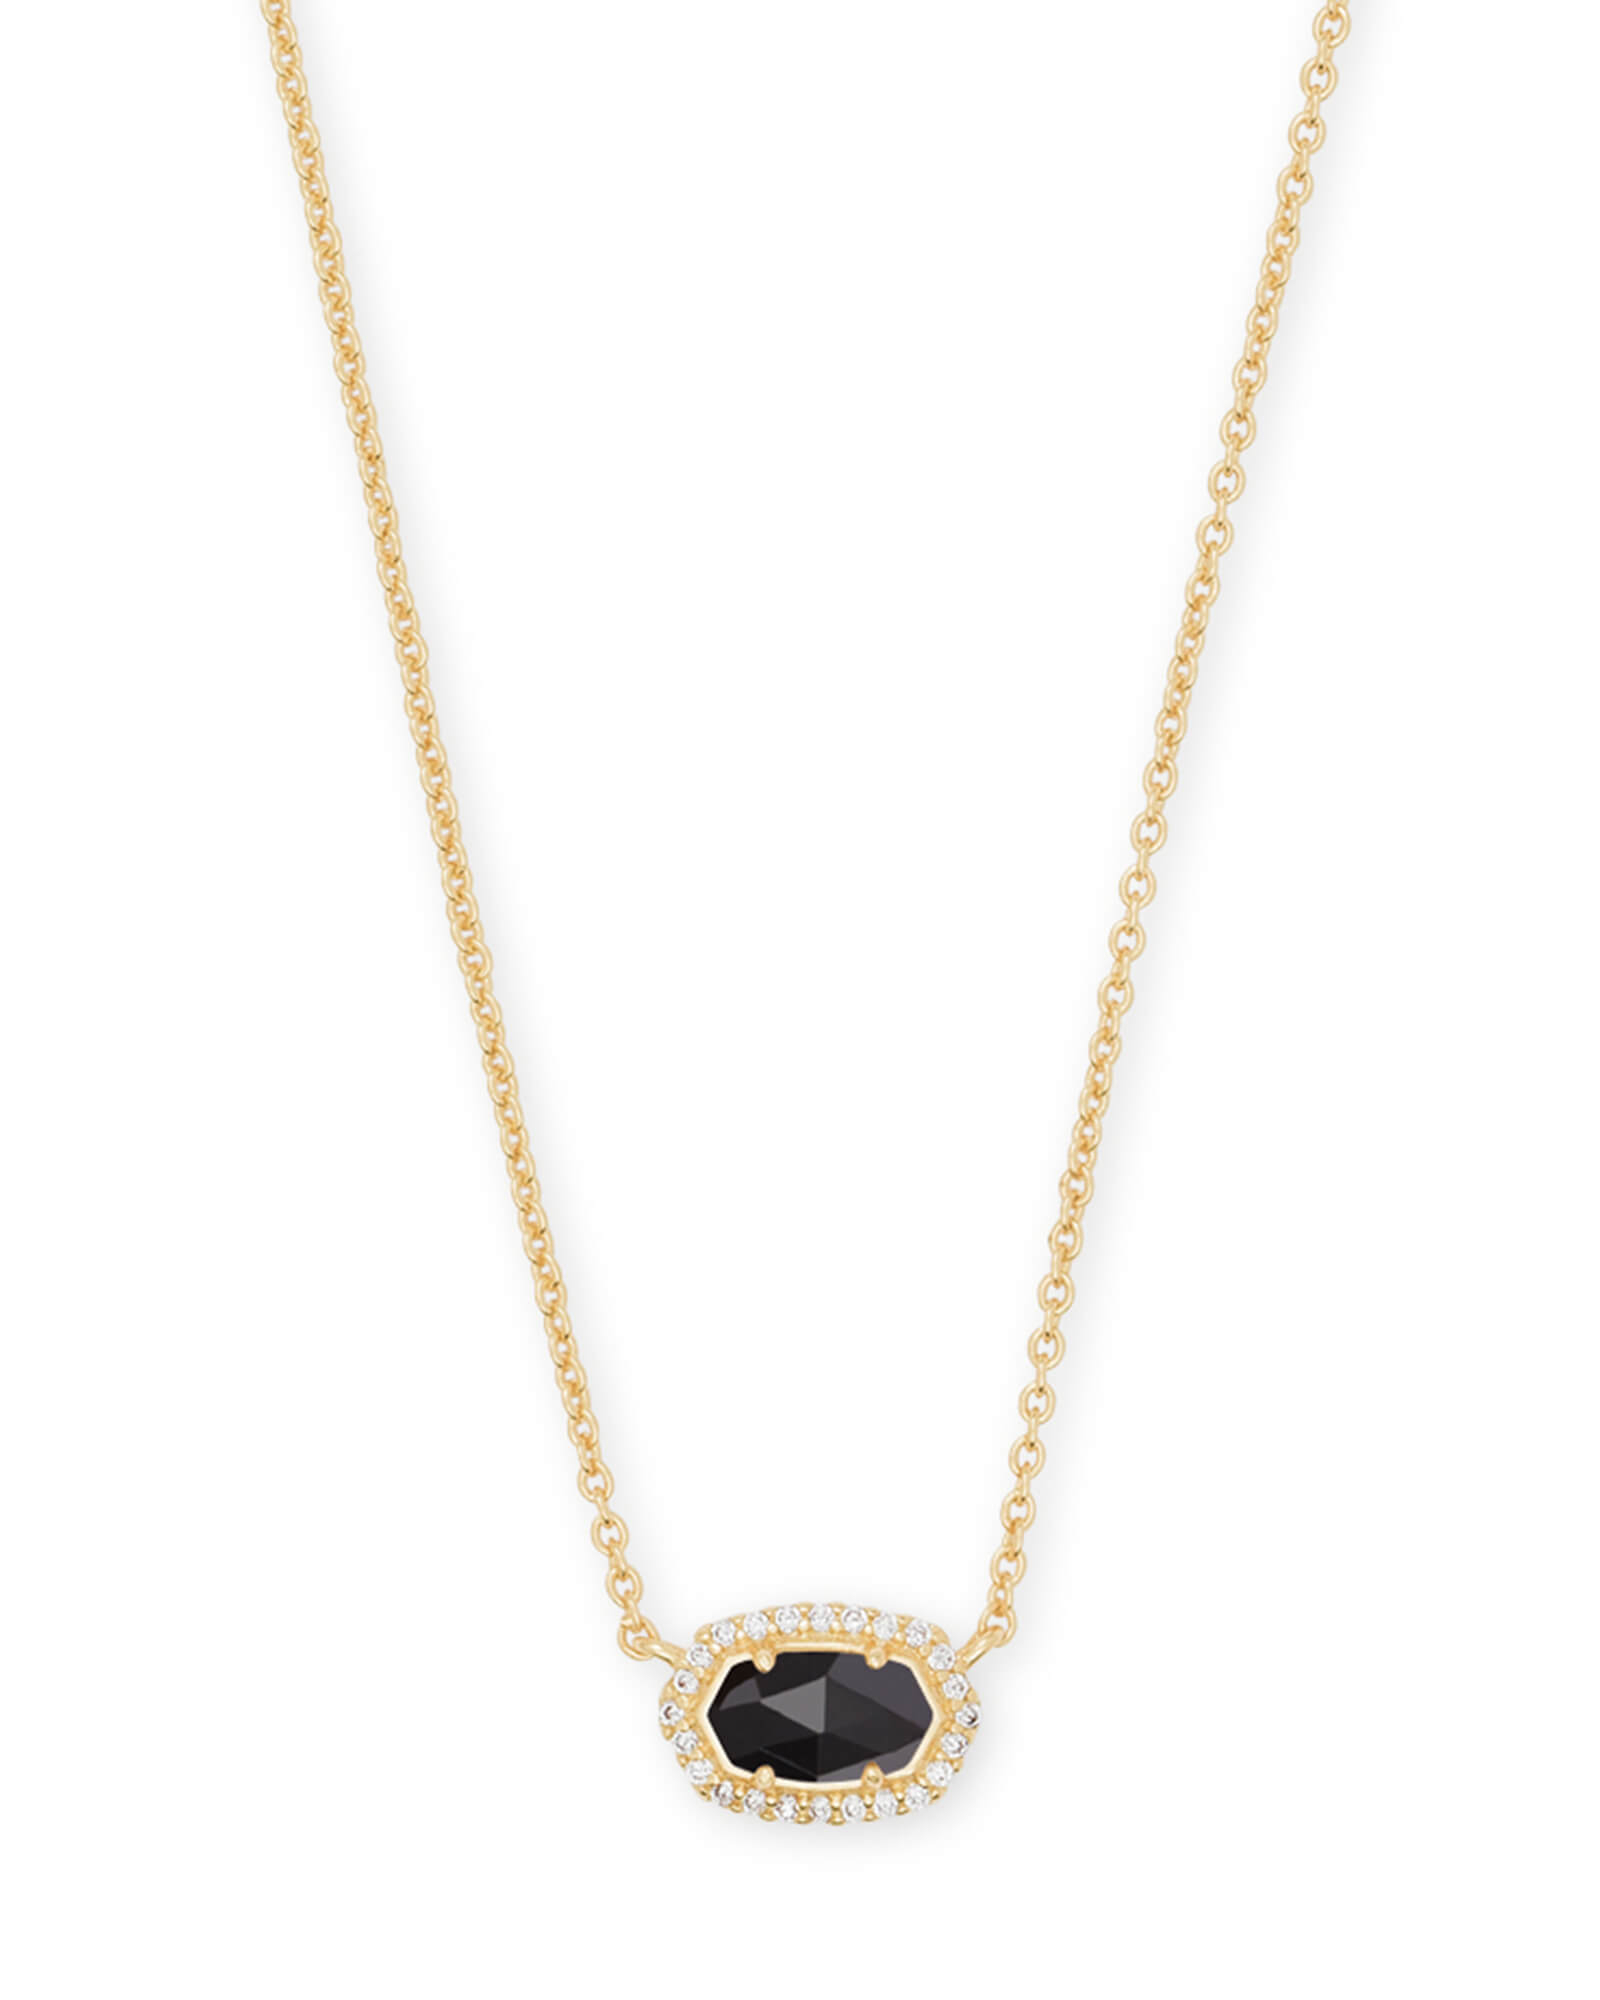 Chelsea Gold Pendant Necklace In Black Glass | Kendra Scott Throughout Most Current Oval Sparkle Halo Pendant Necklaces (View 3 of 25)